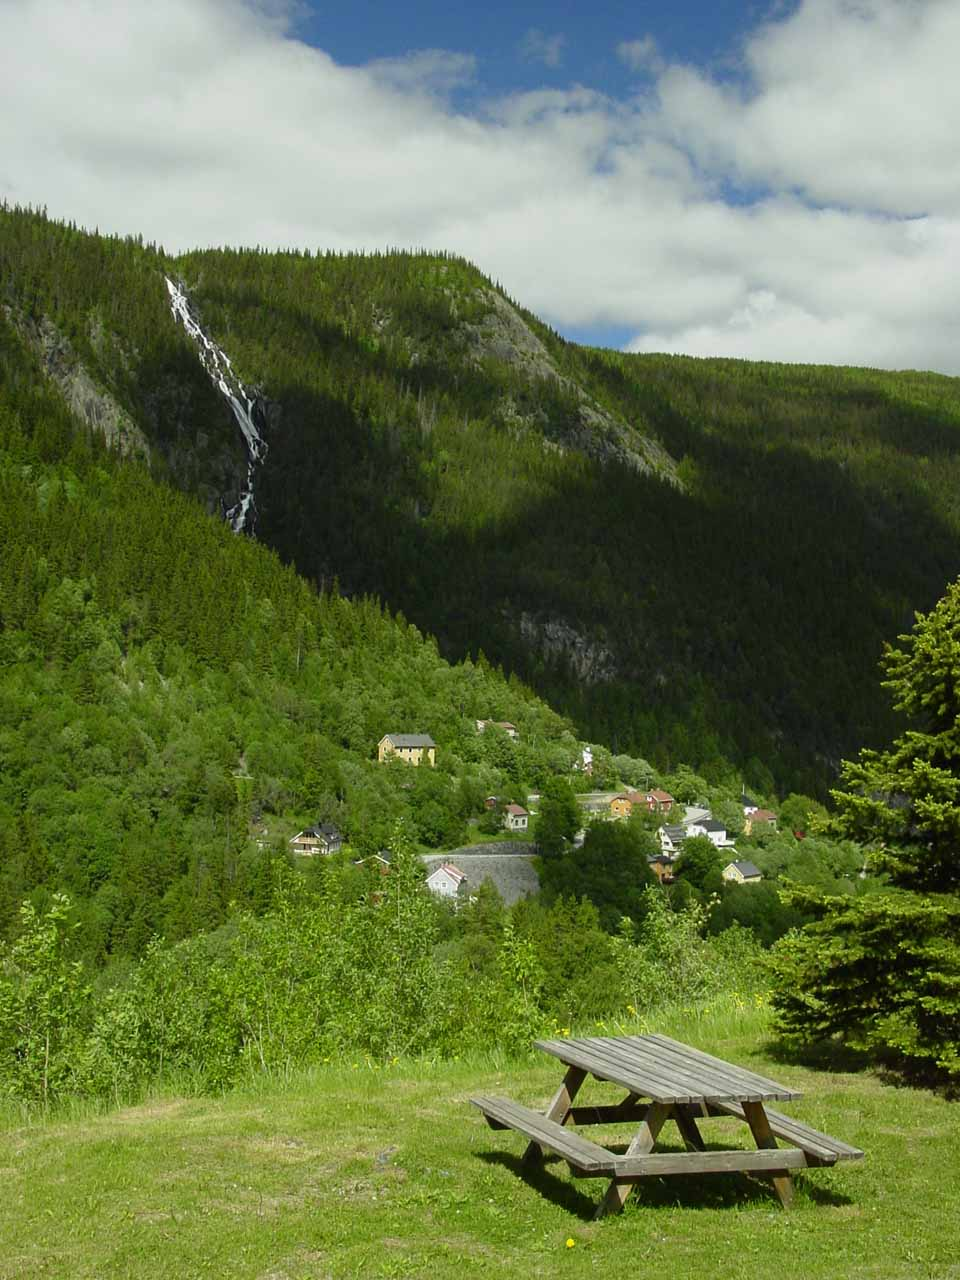 This picnic table was an inviting place to admire the Våeråifossen